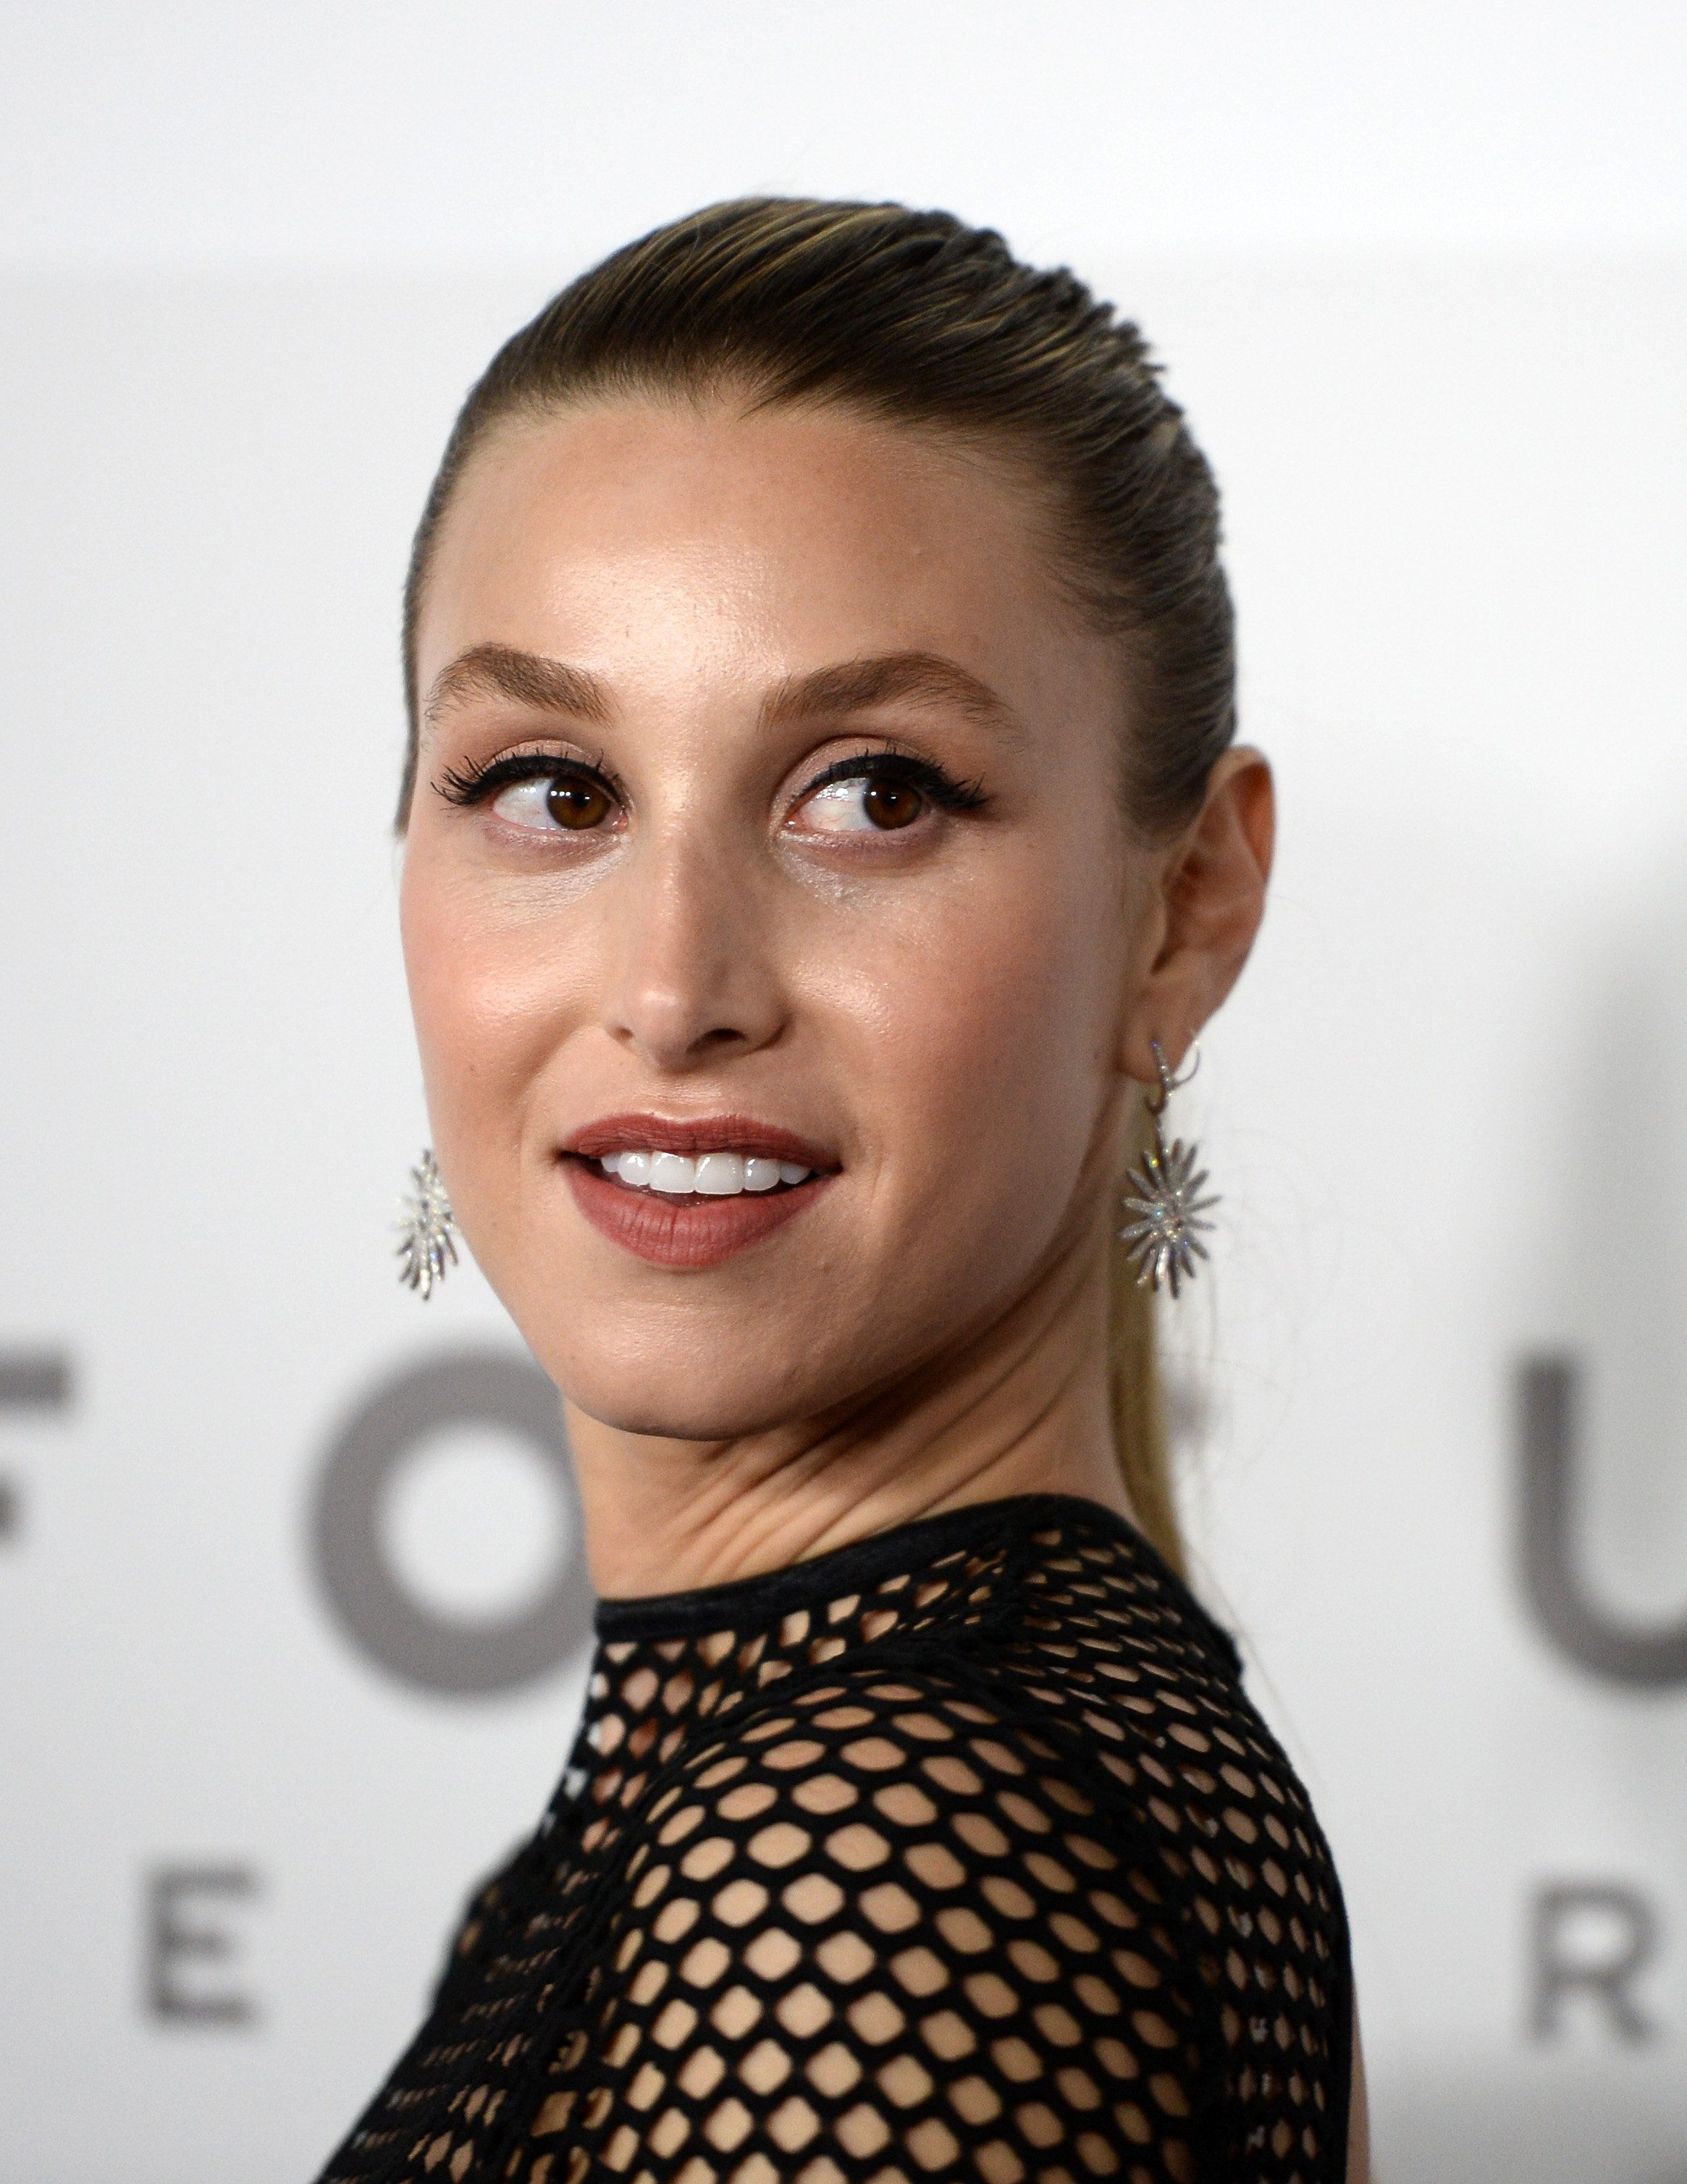 BEVERLY HILLS, CA - JANUARY 10:  Designer Whitney Port arrives at NBCUniversal's 73rd Annual Golden Globes After Party at The Beverly Hilton Hotel on January 10, 2016 in Beverly Hills, California.  (Photo by Amanda Edwards/WireImage)